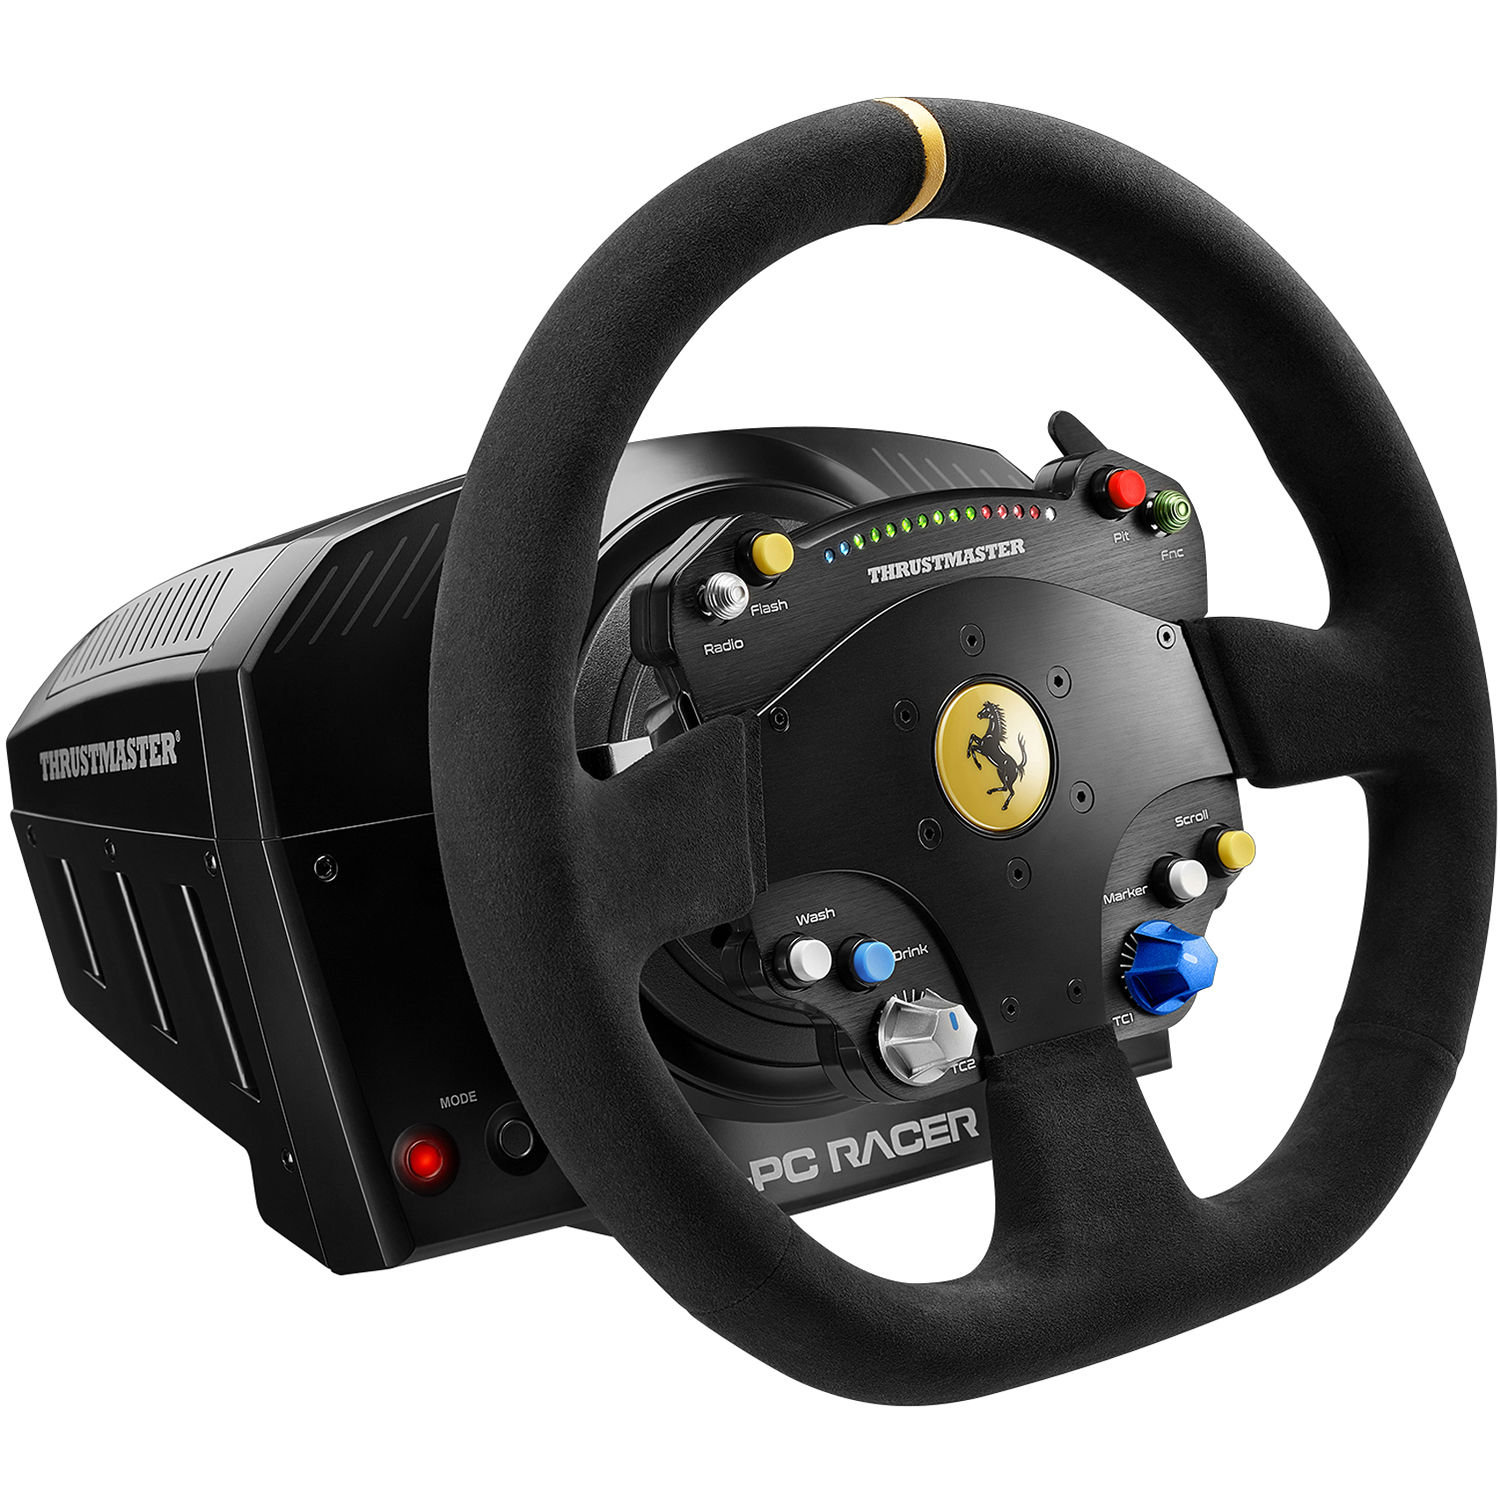 thrustmaster ts pc racer racing wheel 2969103 b h photo video. Black Bedroom Furniture Sets. Home Design Ideas